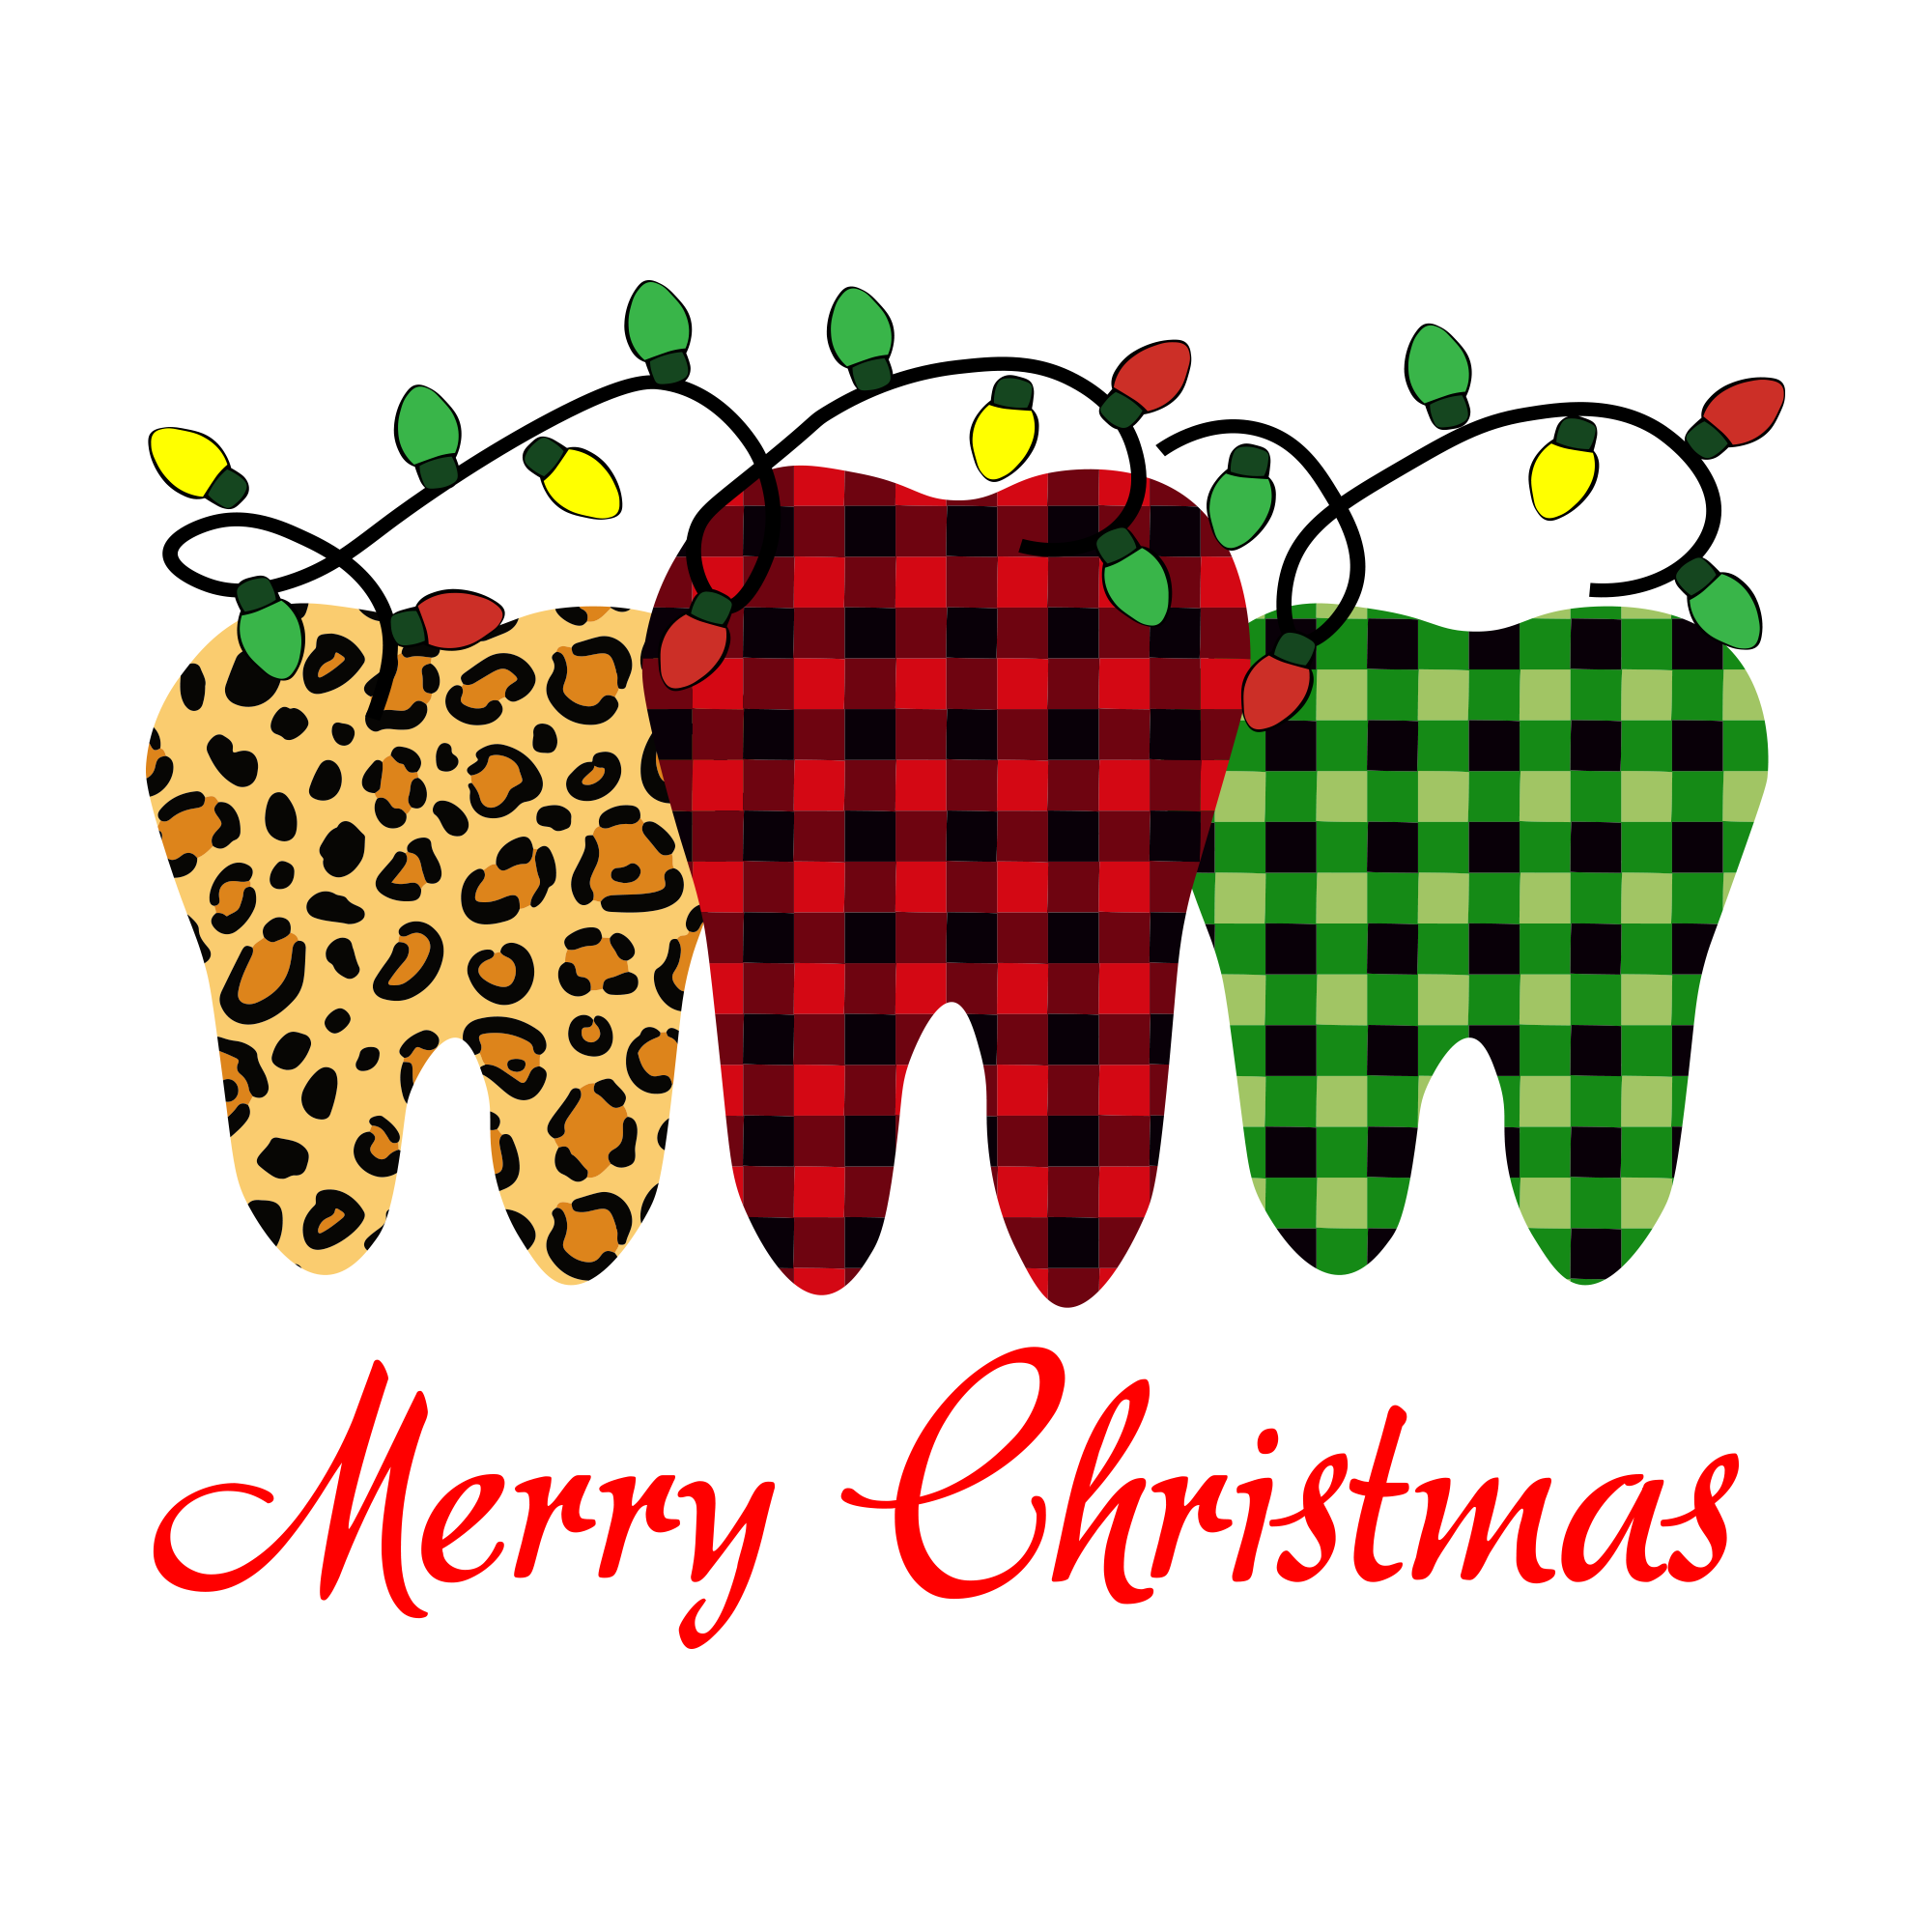 Three Teeth Merry Christmas, Christmas Svg, Leopard Teeth, Patern Teeth, Christmas Svg, Christmas Gifts, Merry Christmas, Christmas Holiday, Christmas Party, Funny Christmas, Xmas Gift, Chris